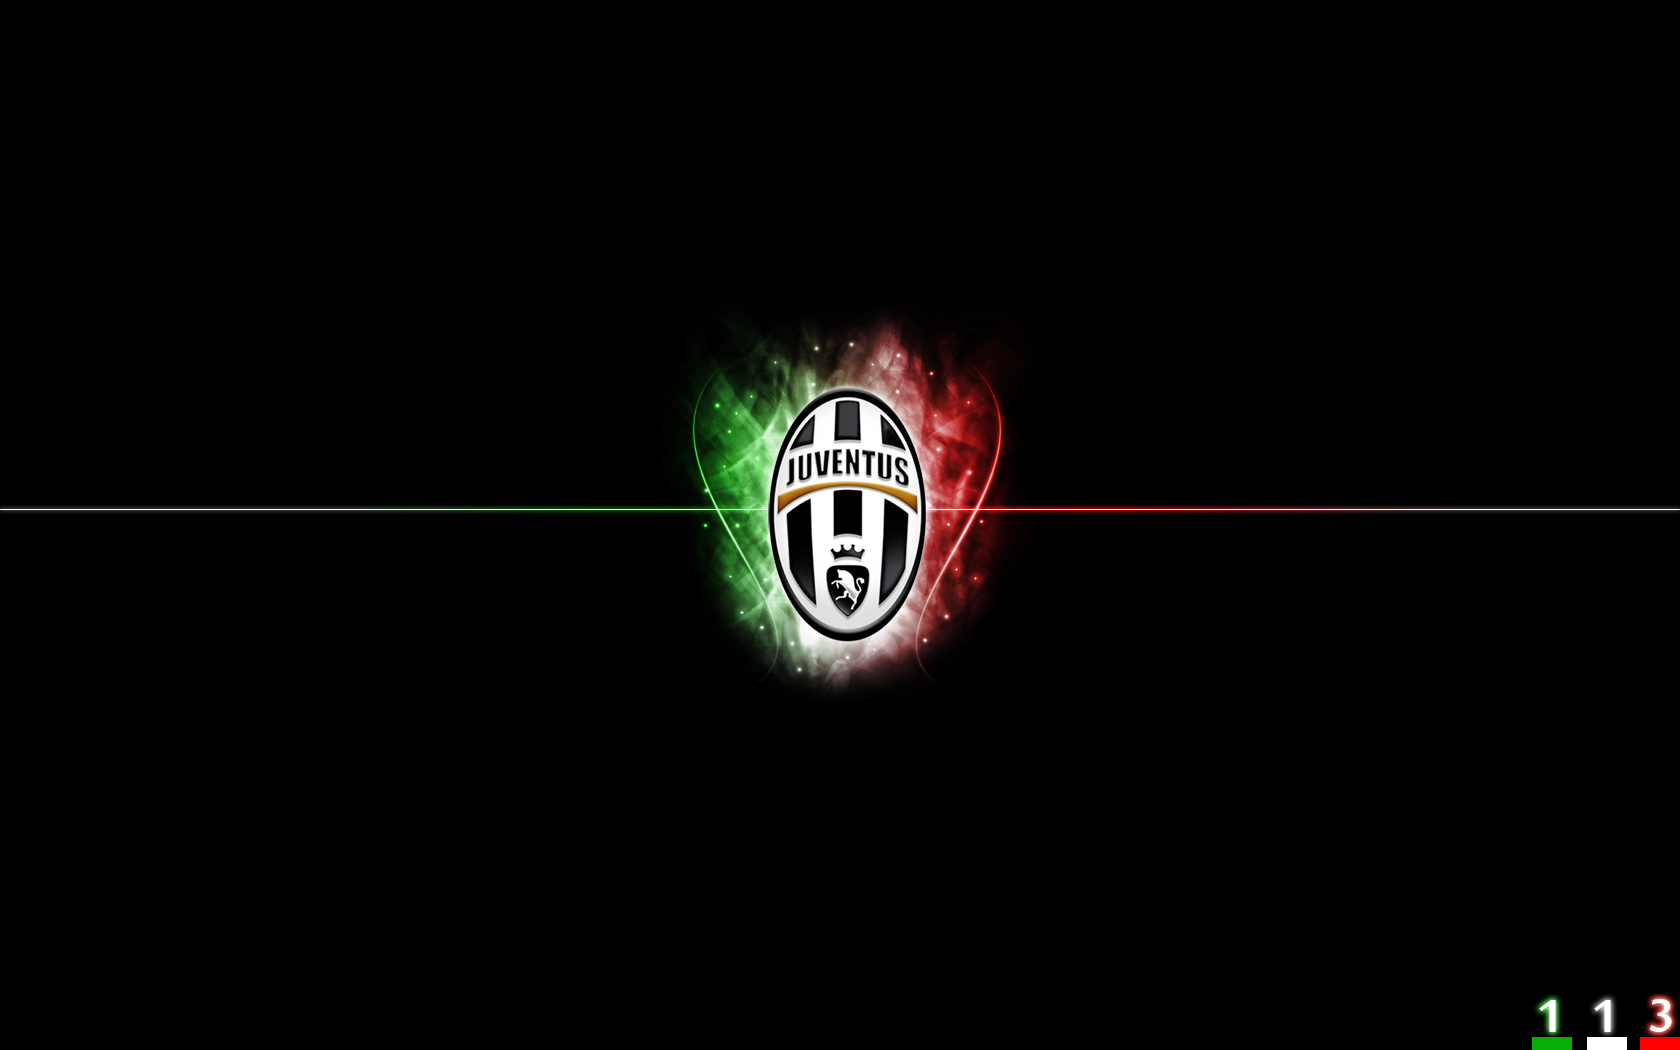 Juventus wallpaper iphones hd 11977 wallpaper walldiskpaper for Sfondo juventus hd